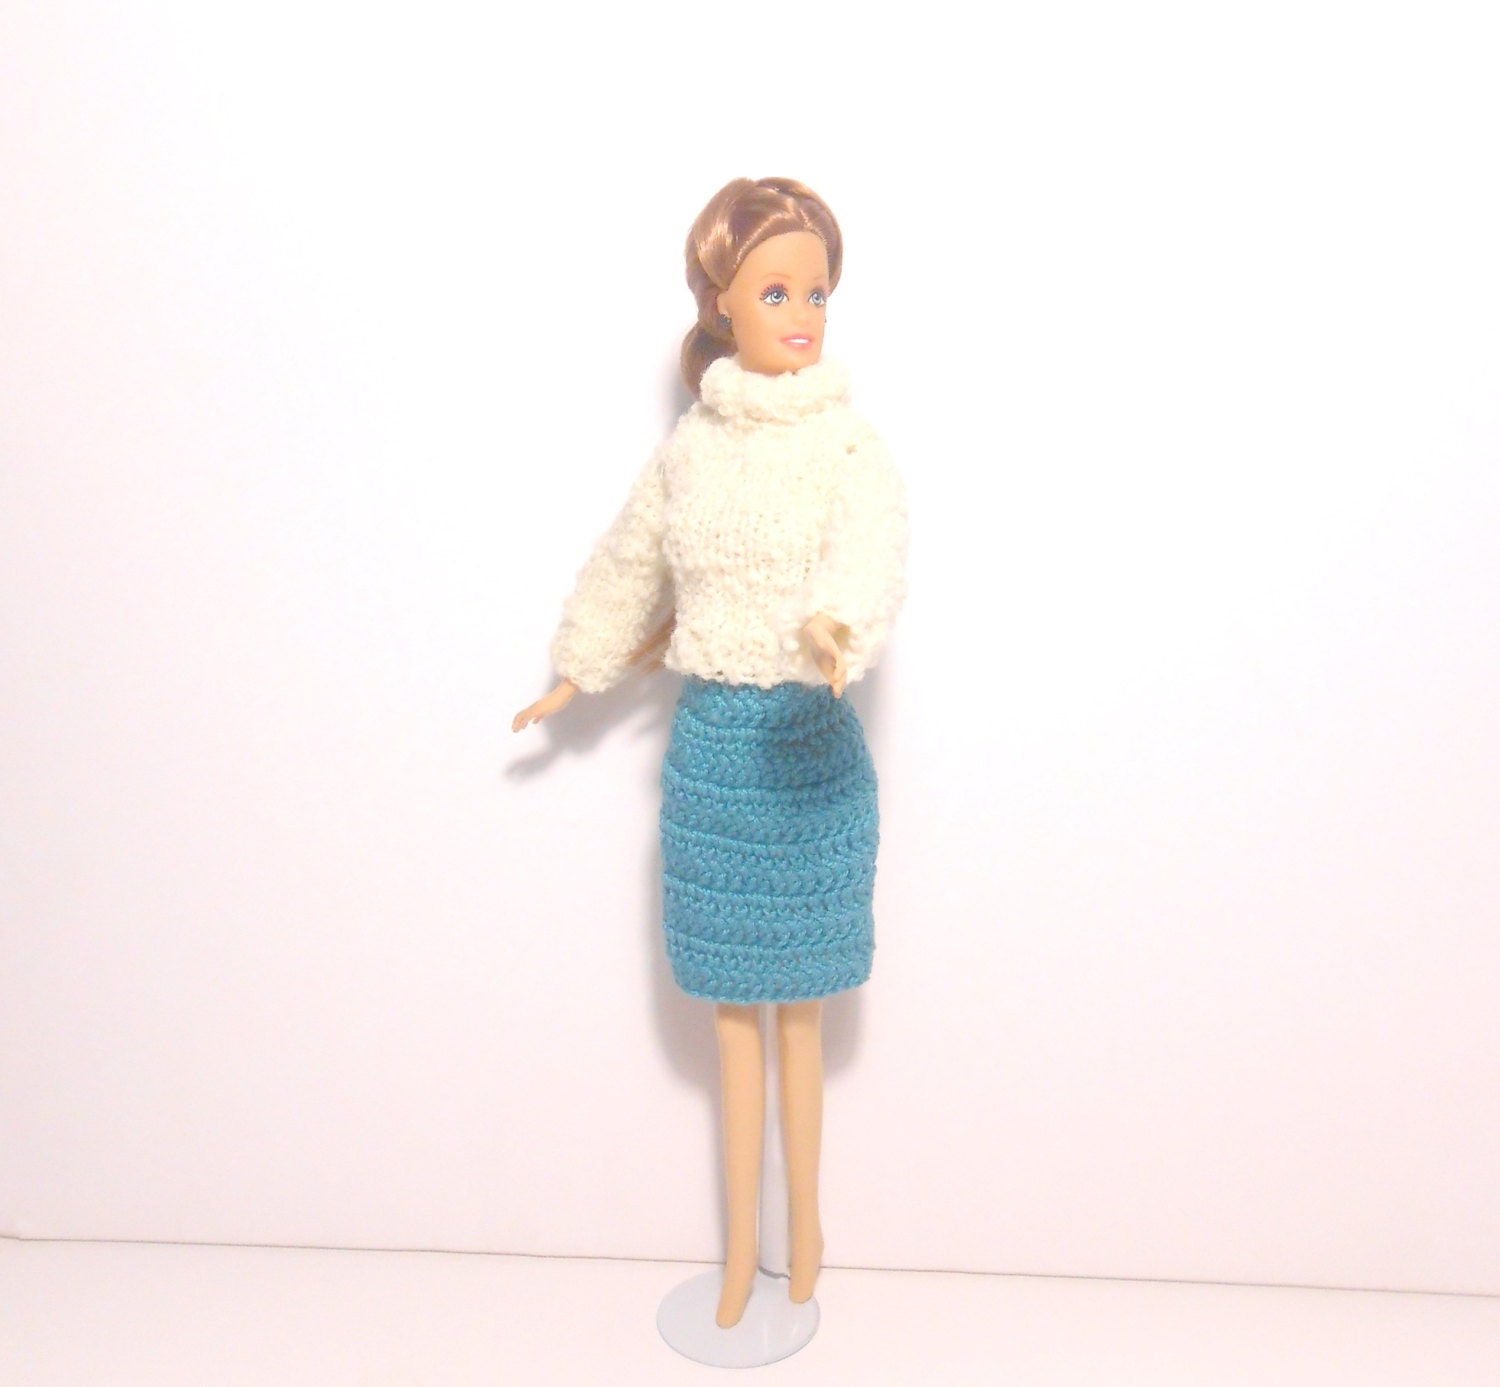 Fashion Doll Skirt and Turtle Neck Sweater Crocheted Doll